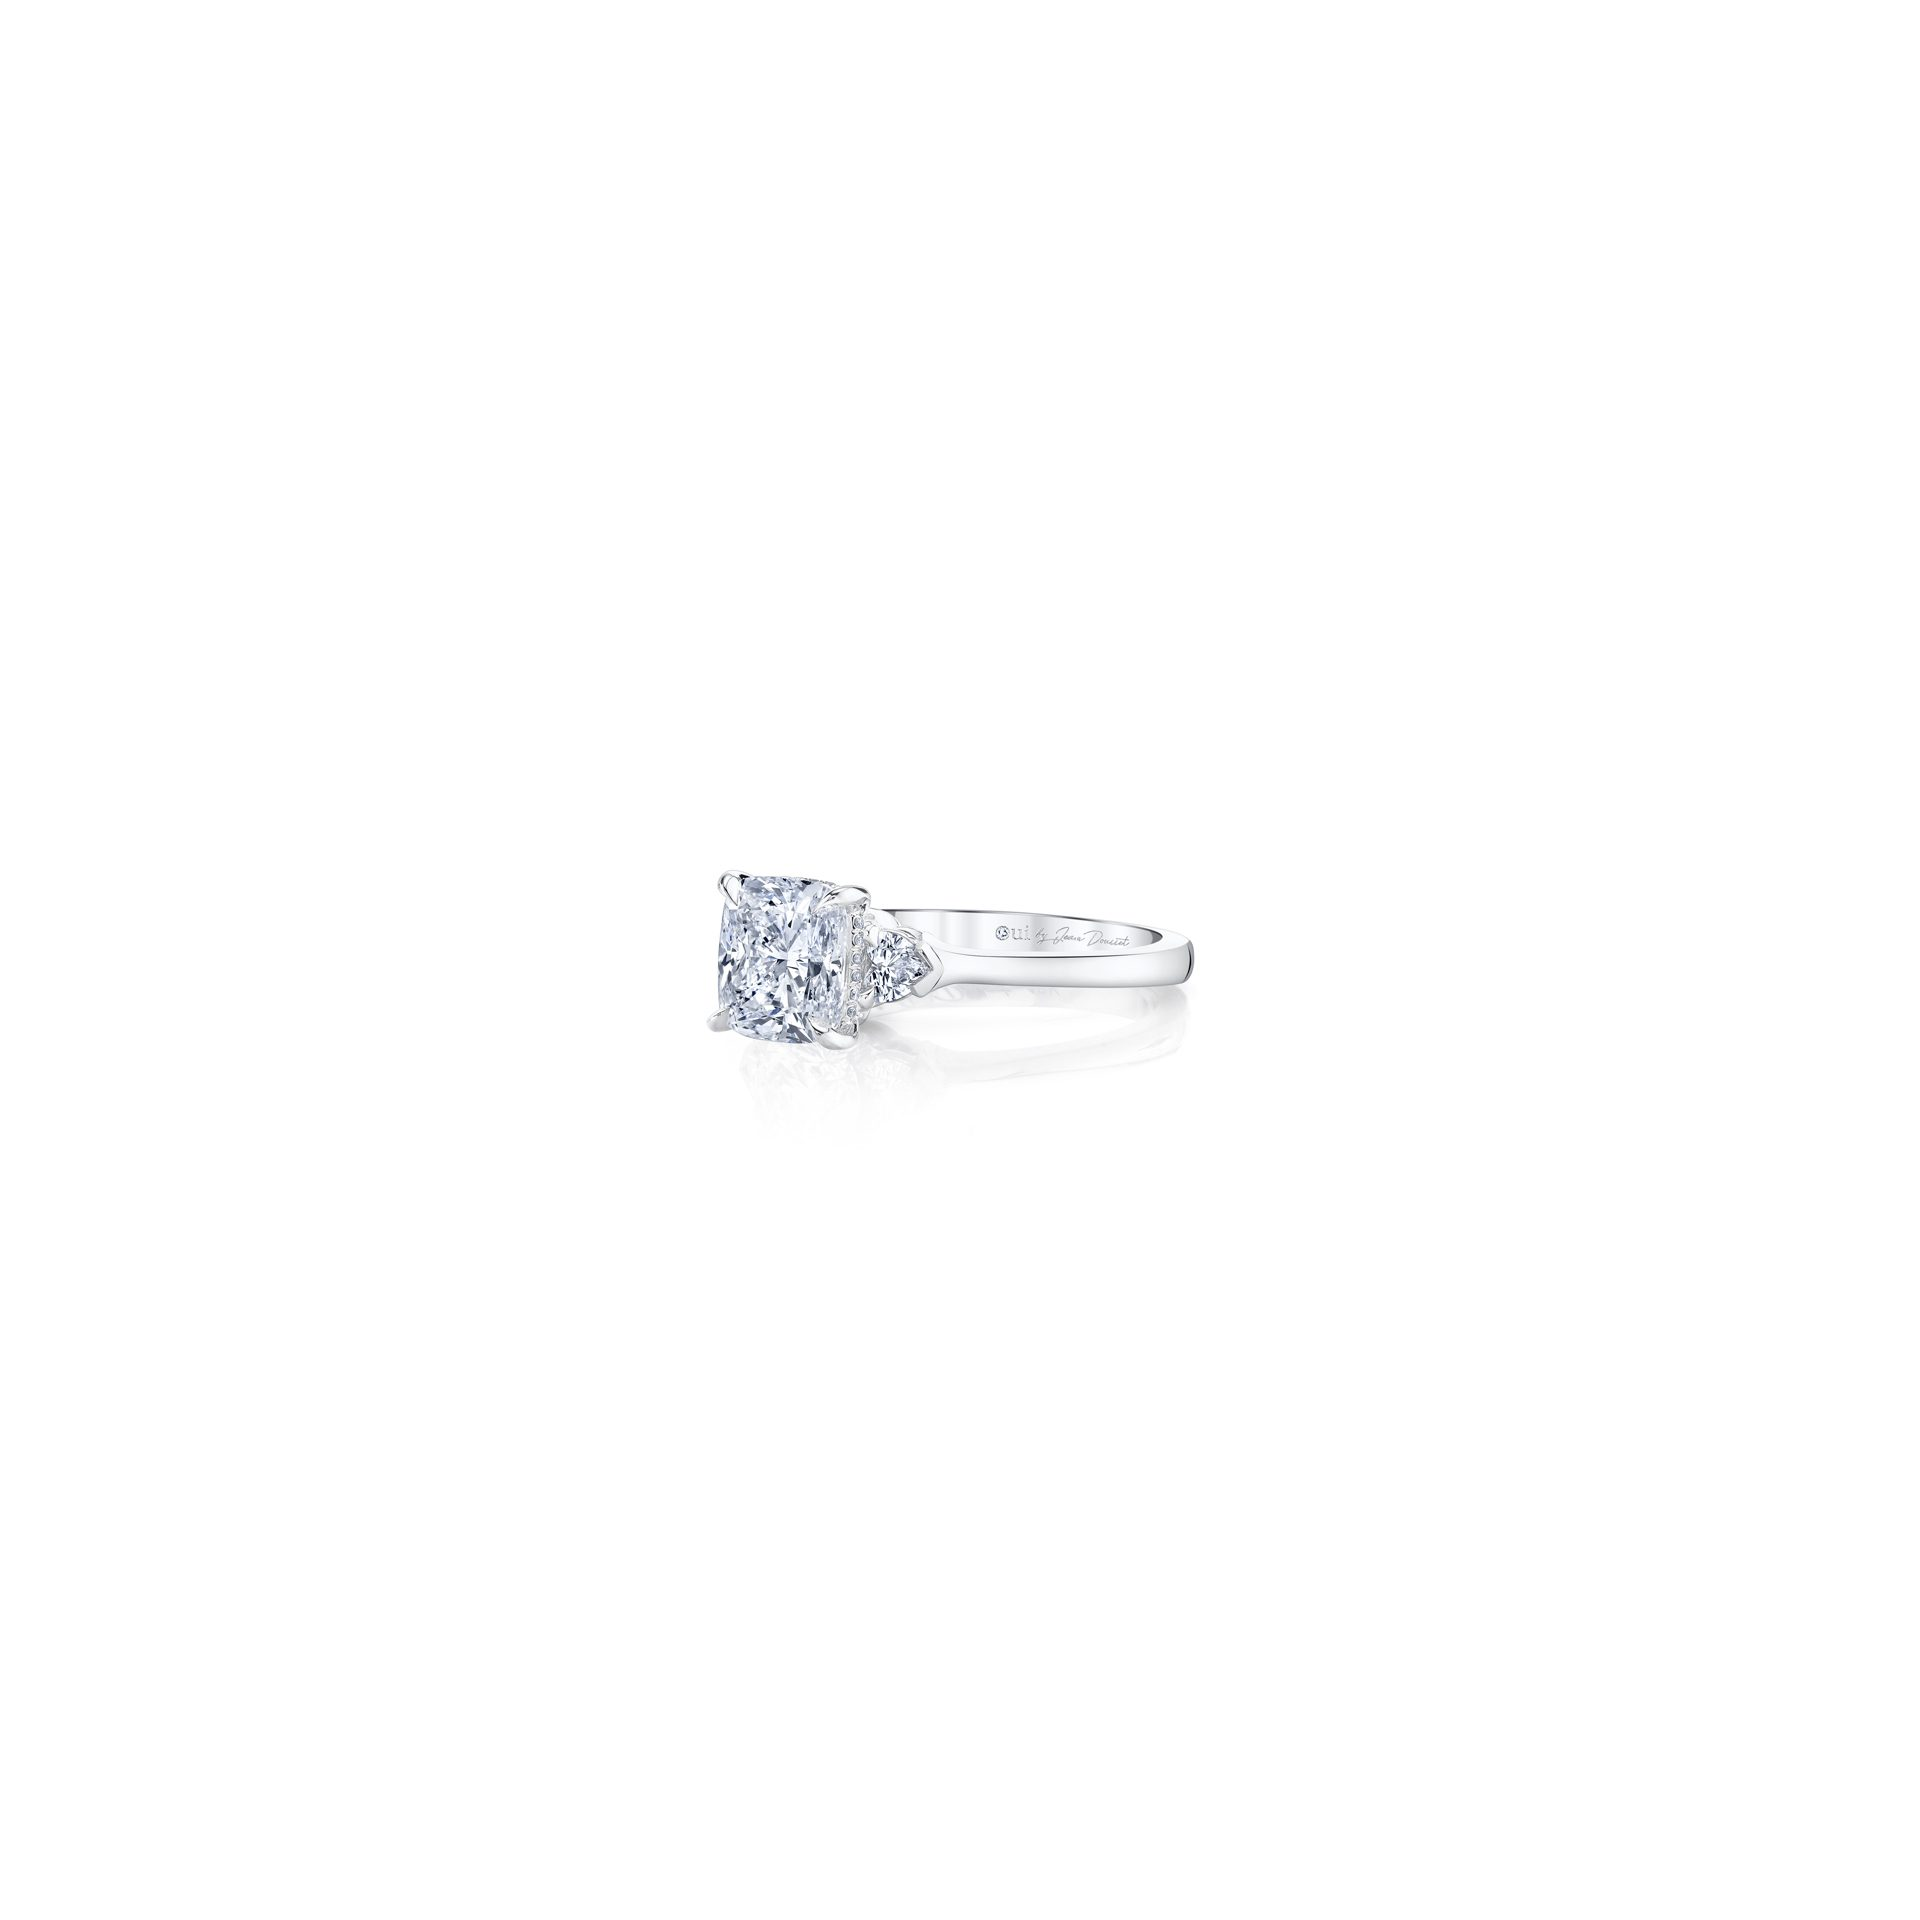 Claire Cushion Three Stone Engagement Ring with heart-shaped diamond side stones in 18k White Gold Side View by Oui by Jean Dousset